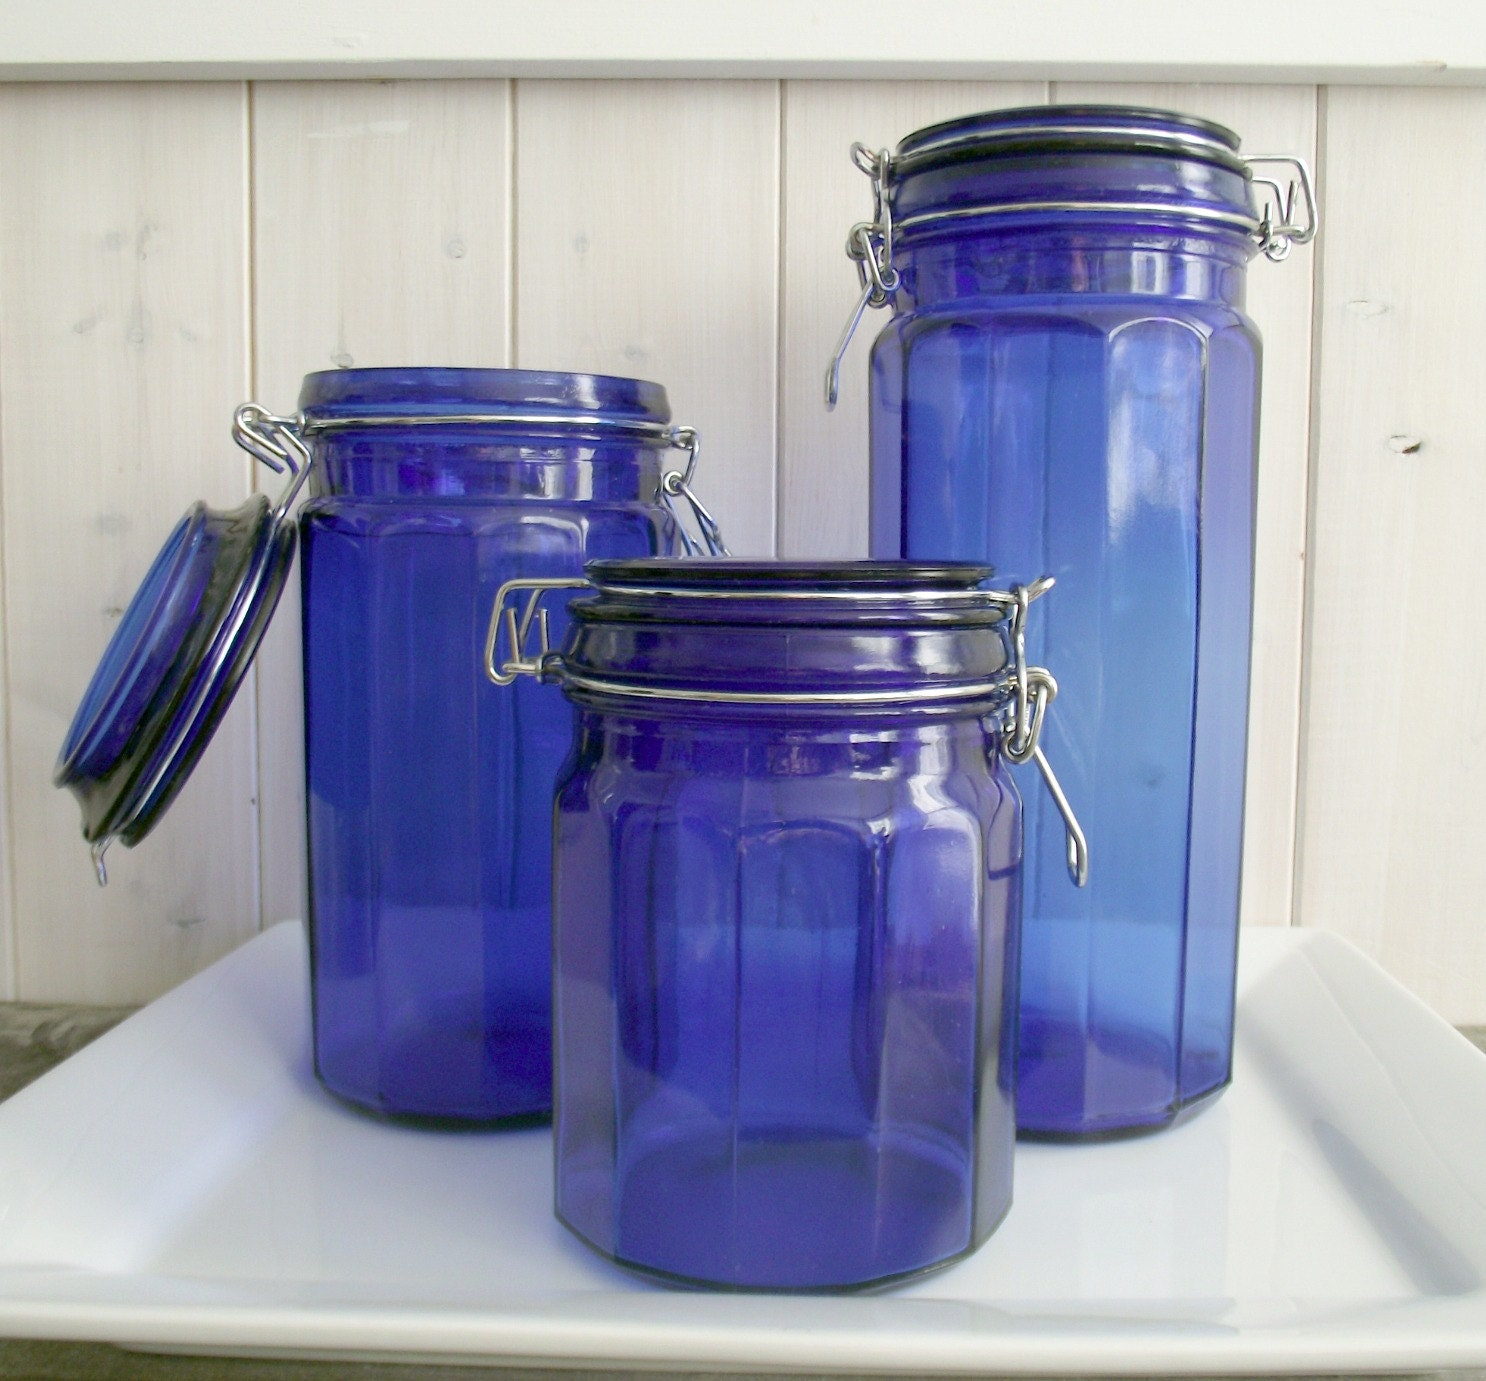 Retro cobalt blue glass canisters - Blue glass kitchen canisters ...